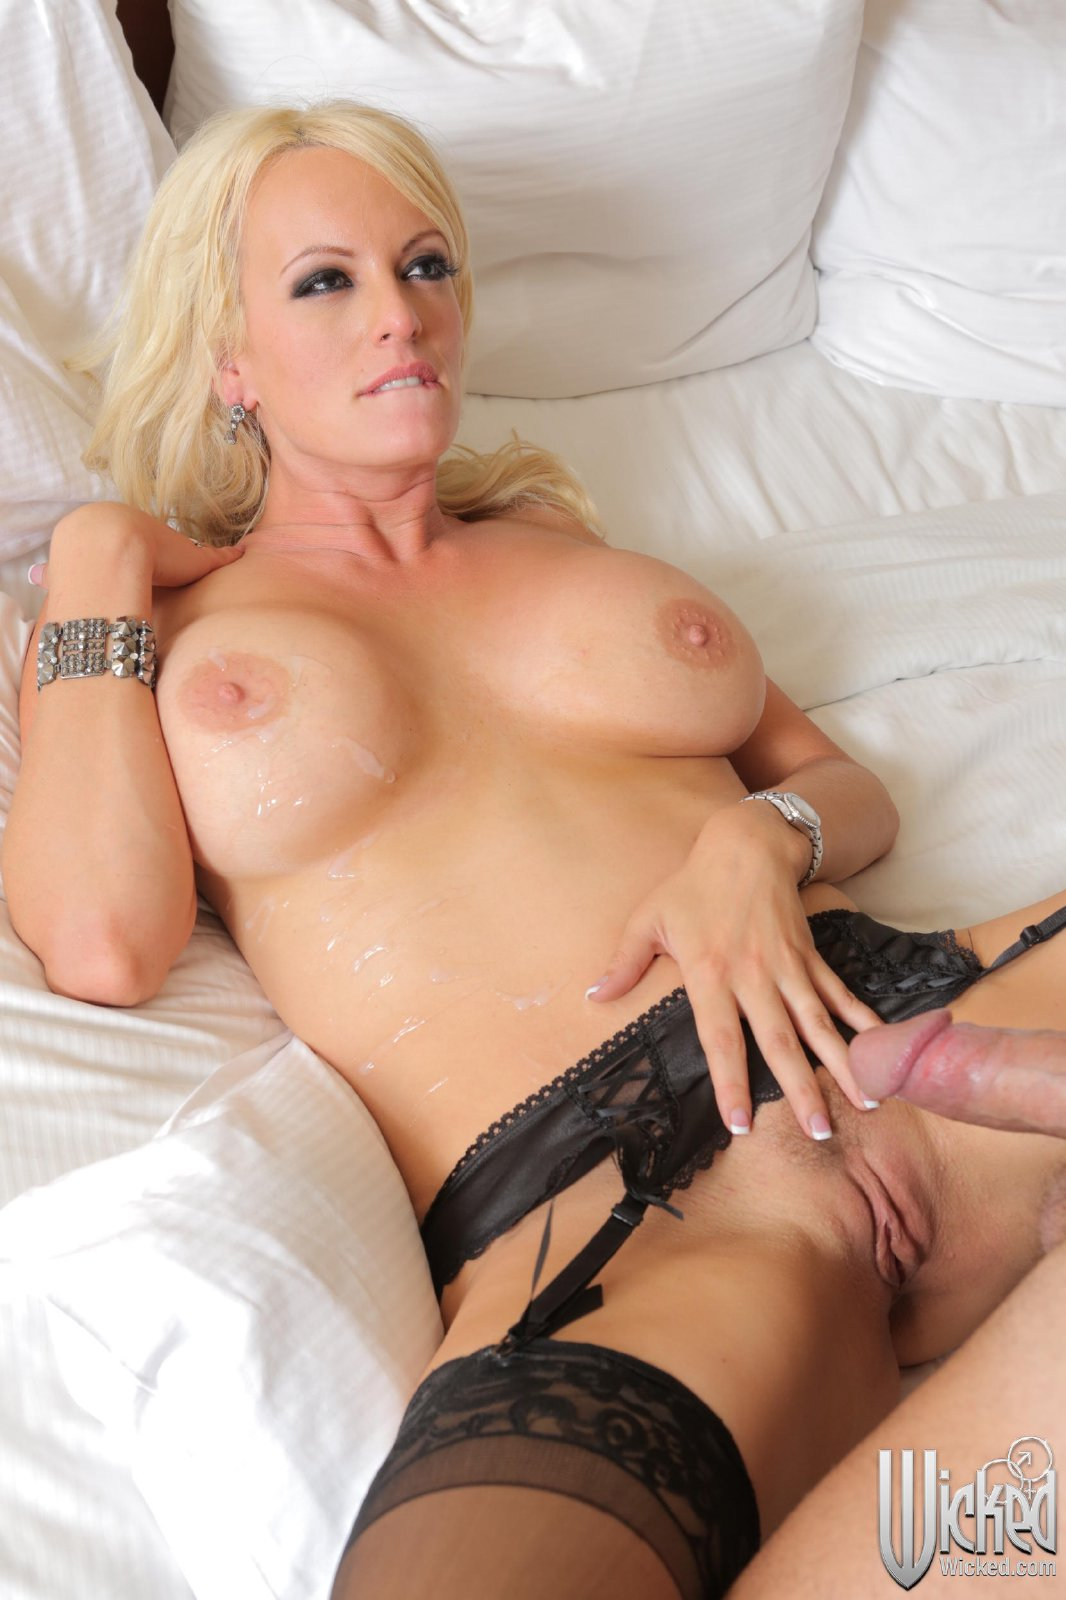 Stormy daniels interracial